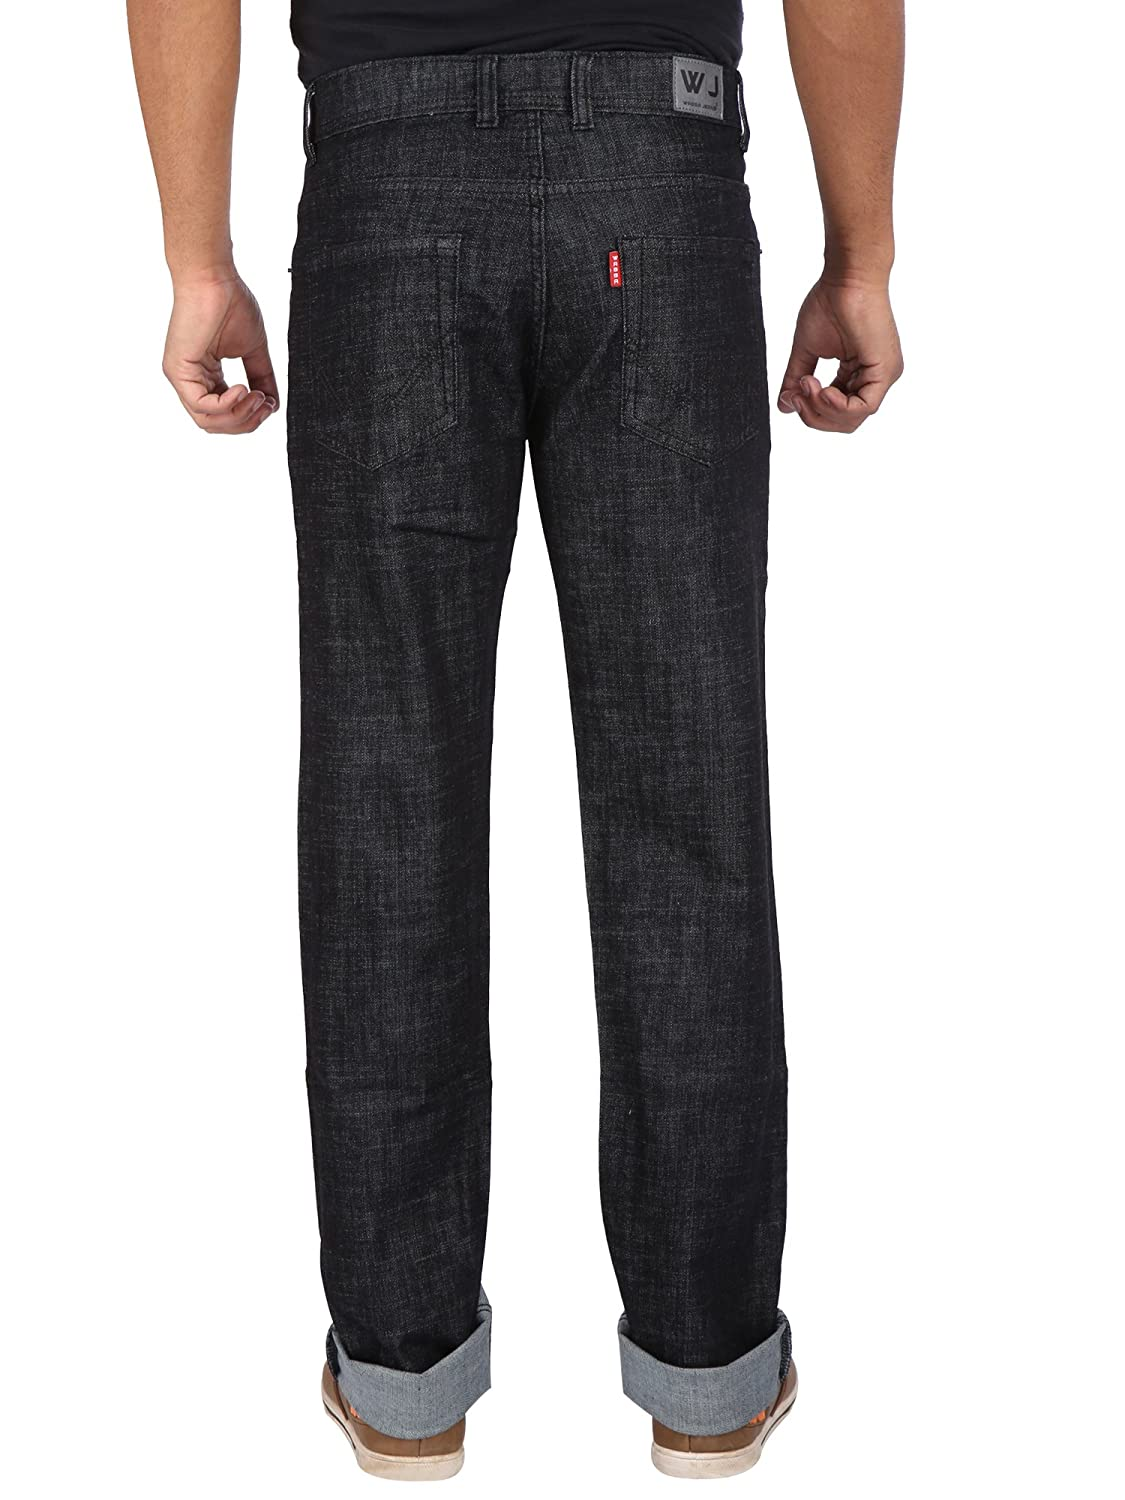 Wabba Mens Stretch Relaxed Slim Fit Jeans